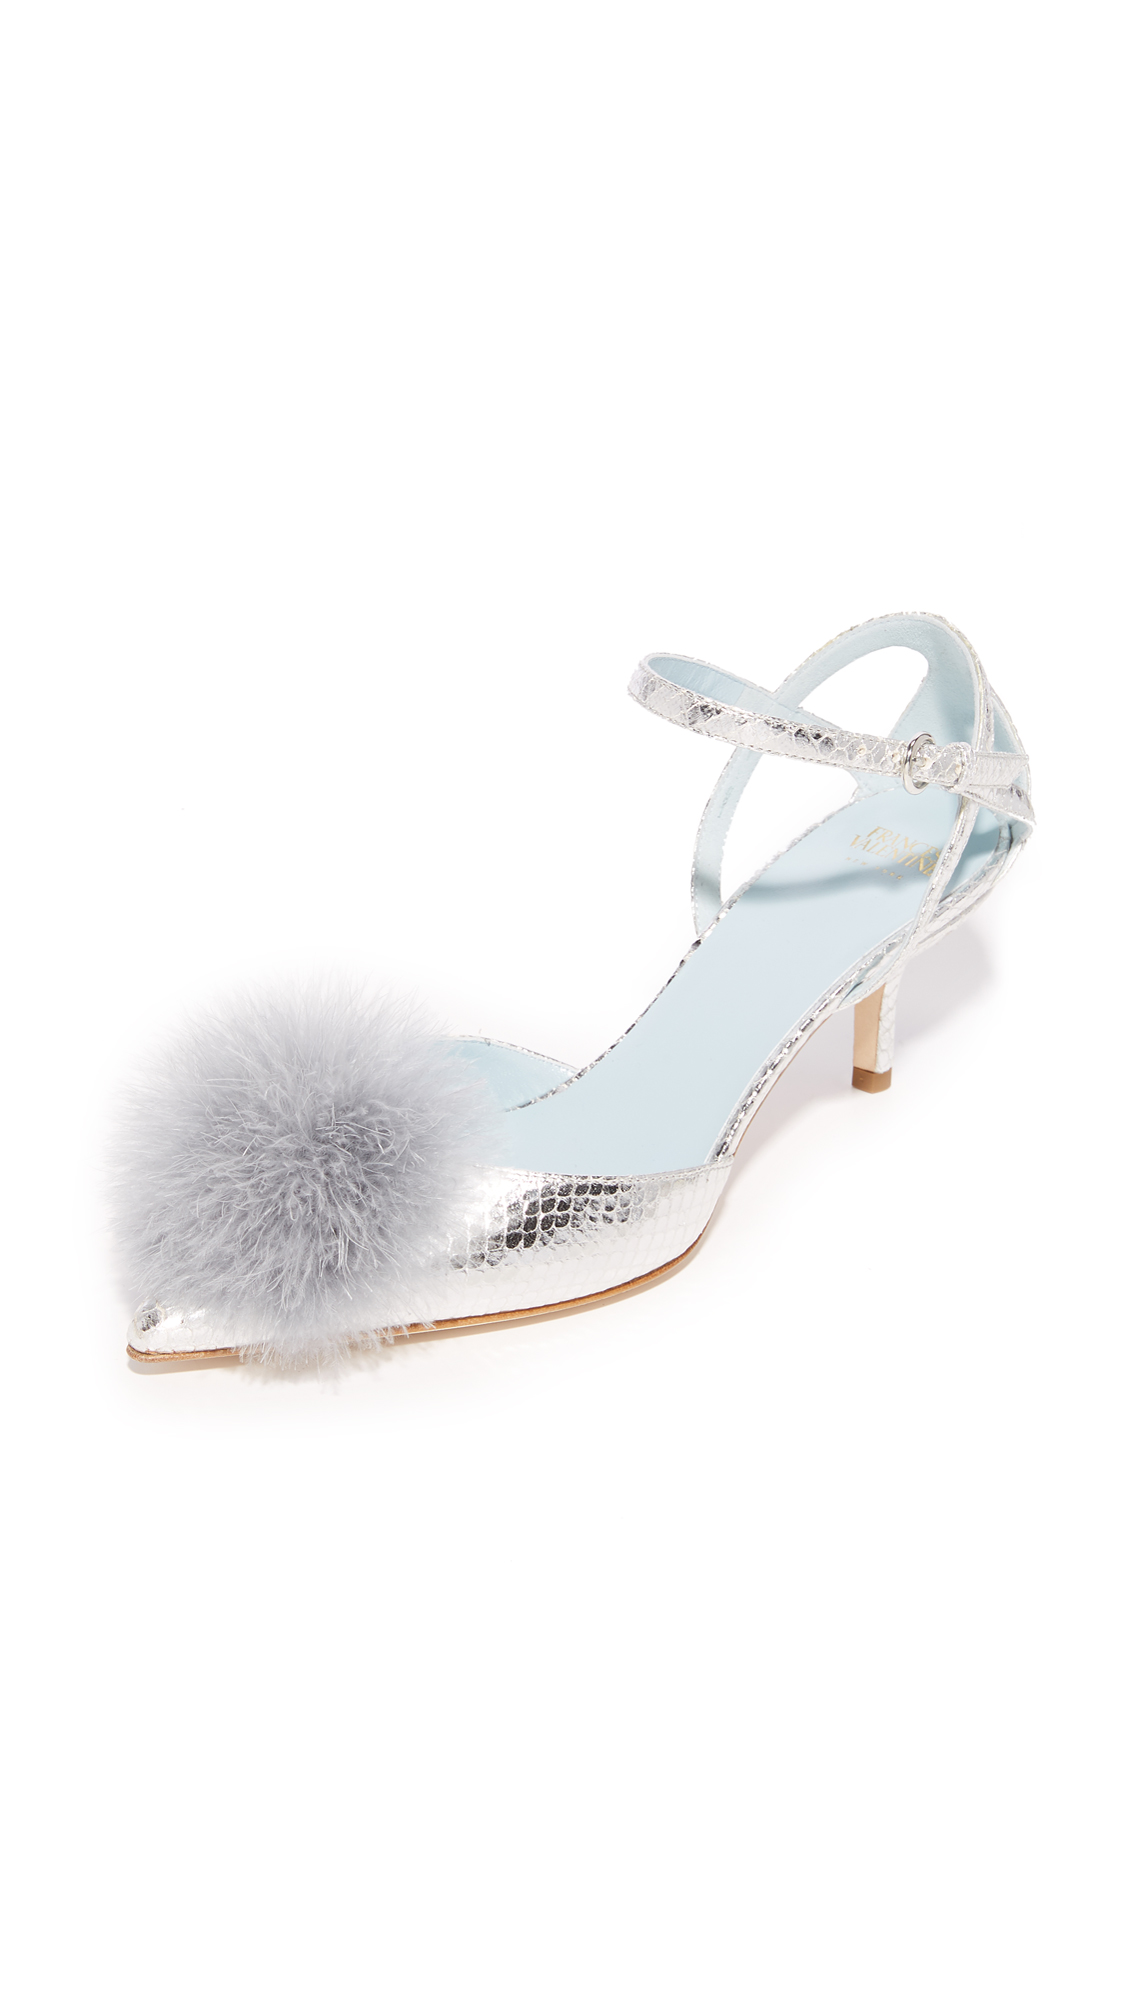 Frances Valentine Willow Pumps - Silver